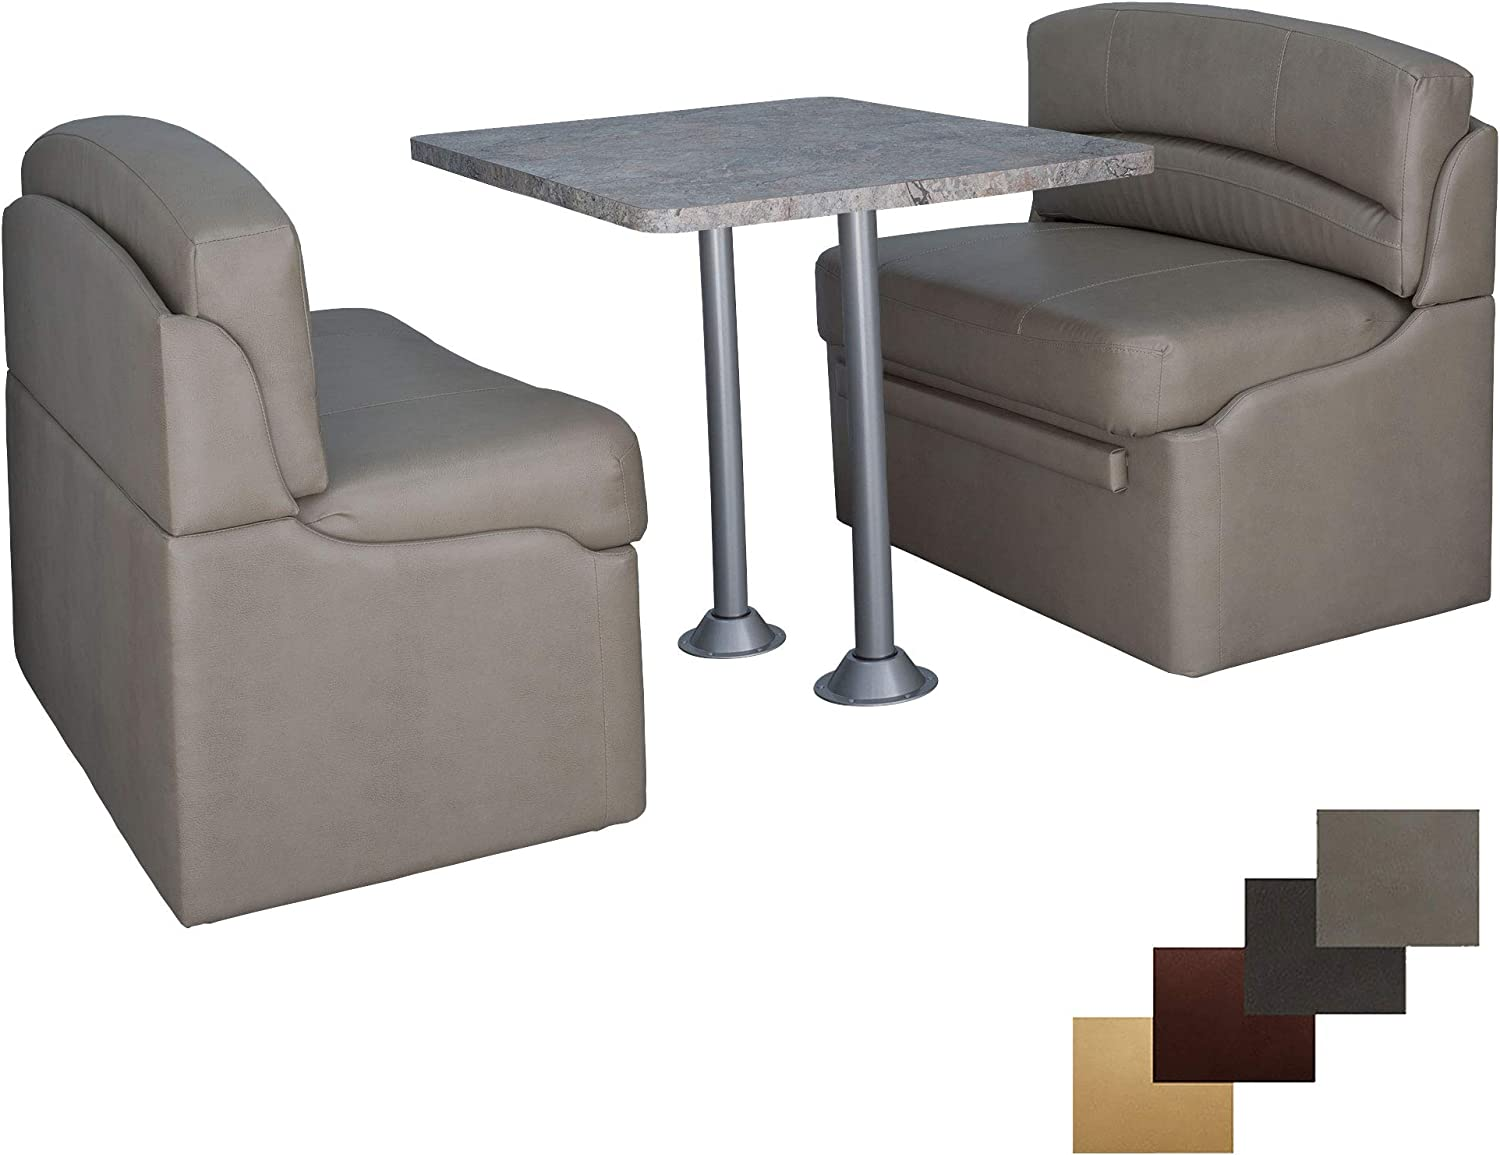 """RecPro 42"""" Dinette Booth Set with Table and Leg, Includes Two Dinette Booths for RV's 